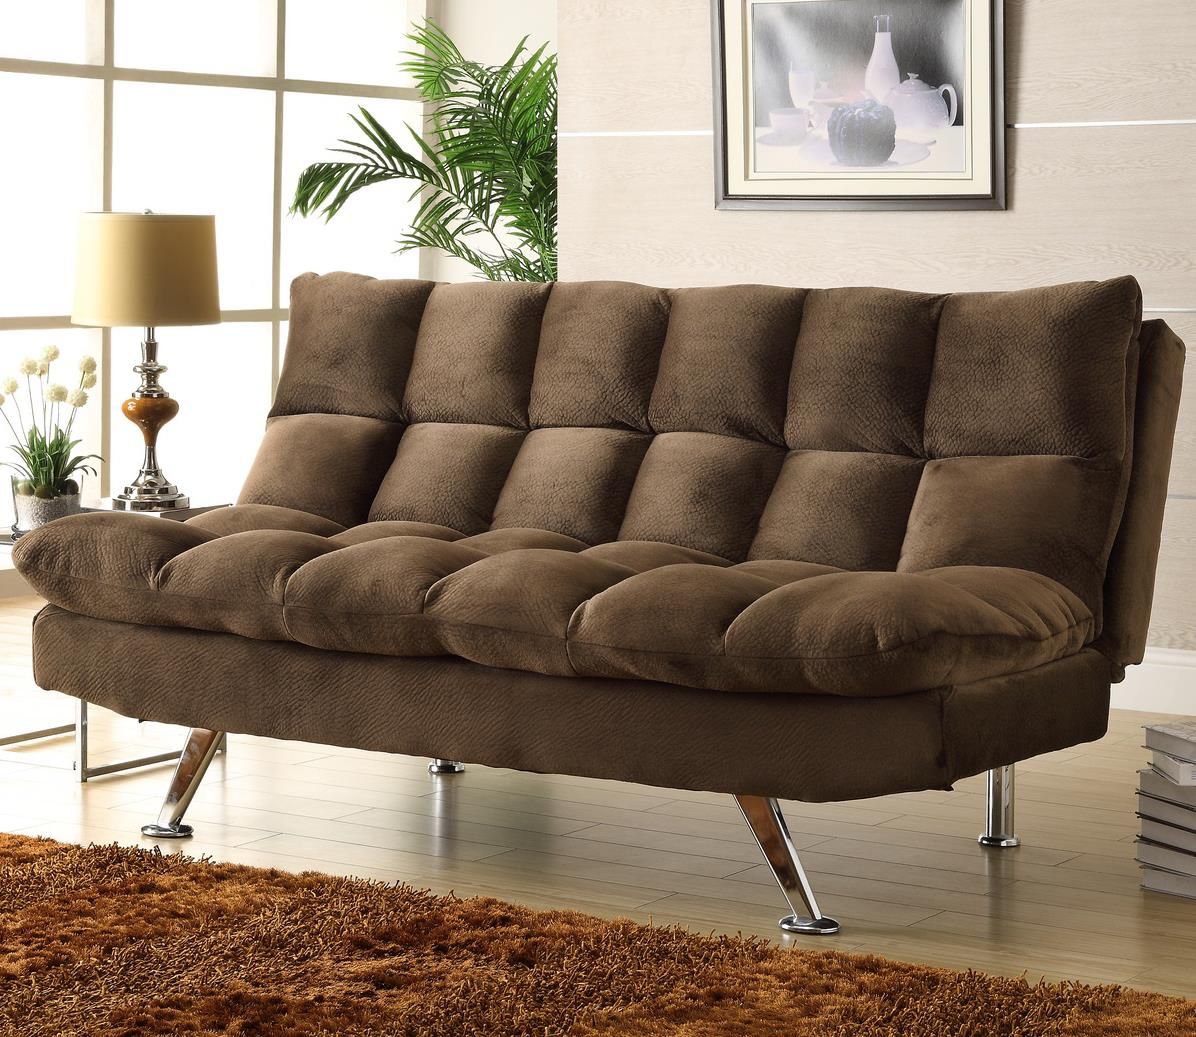 Homelegance Jazz Chocolate Microfiber Lounger - Item Number: 4809CH